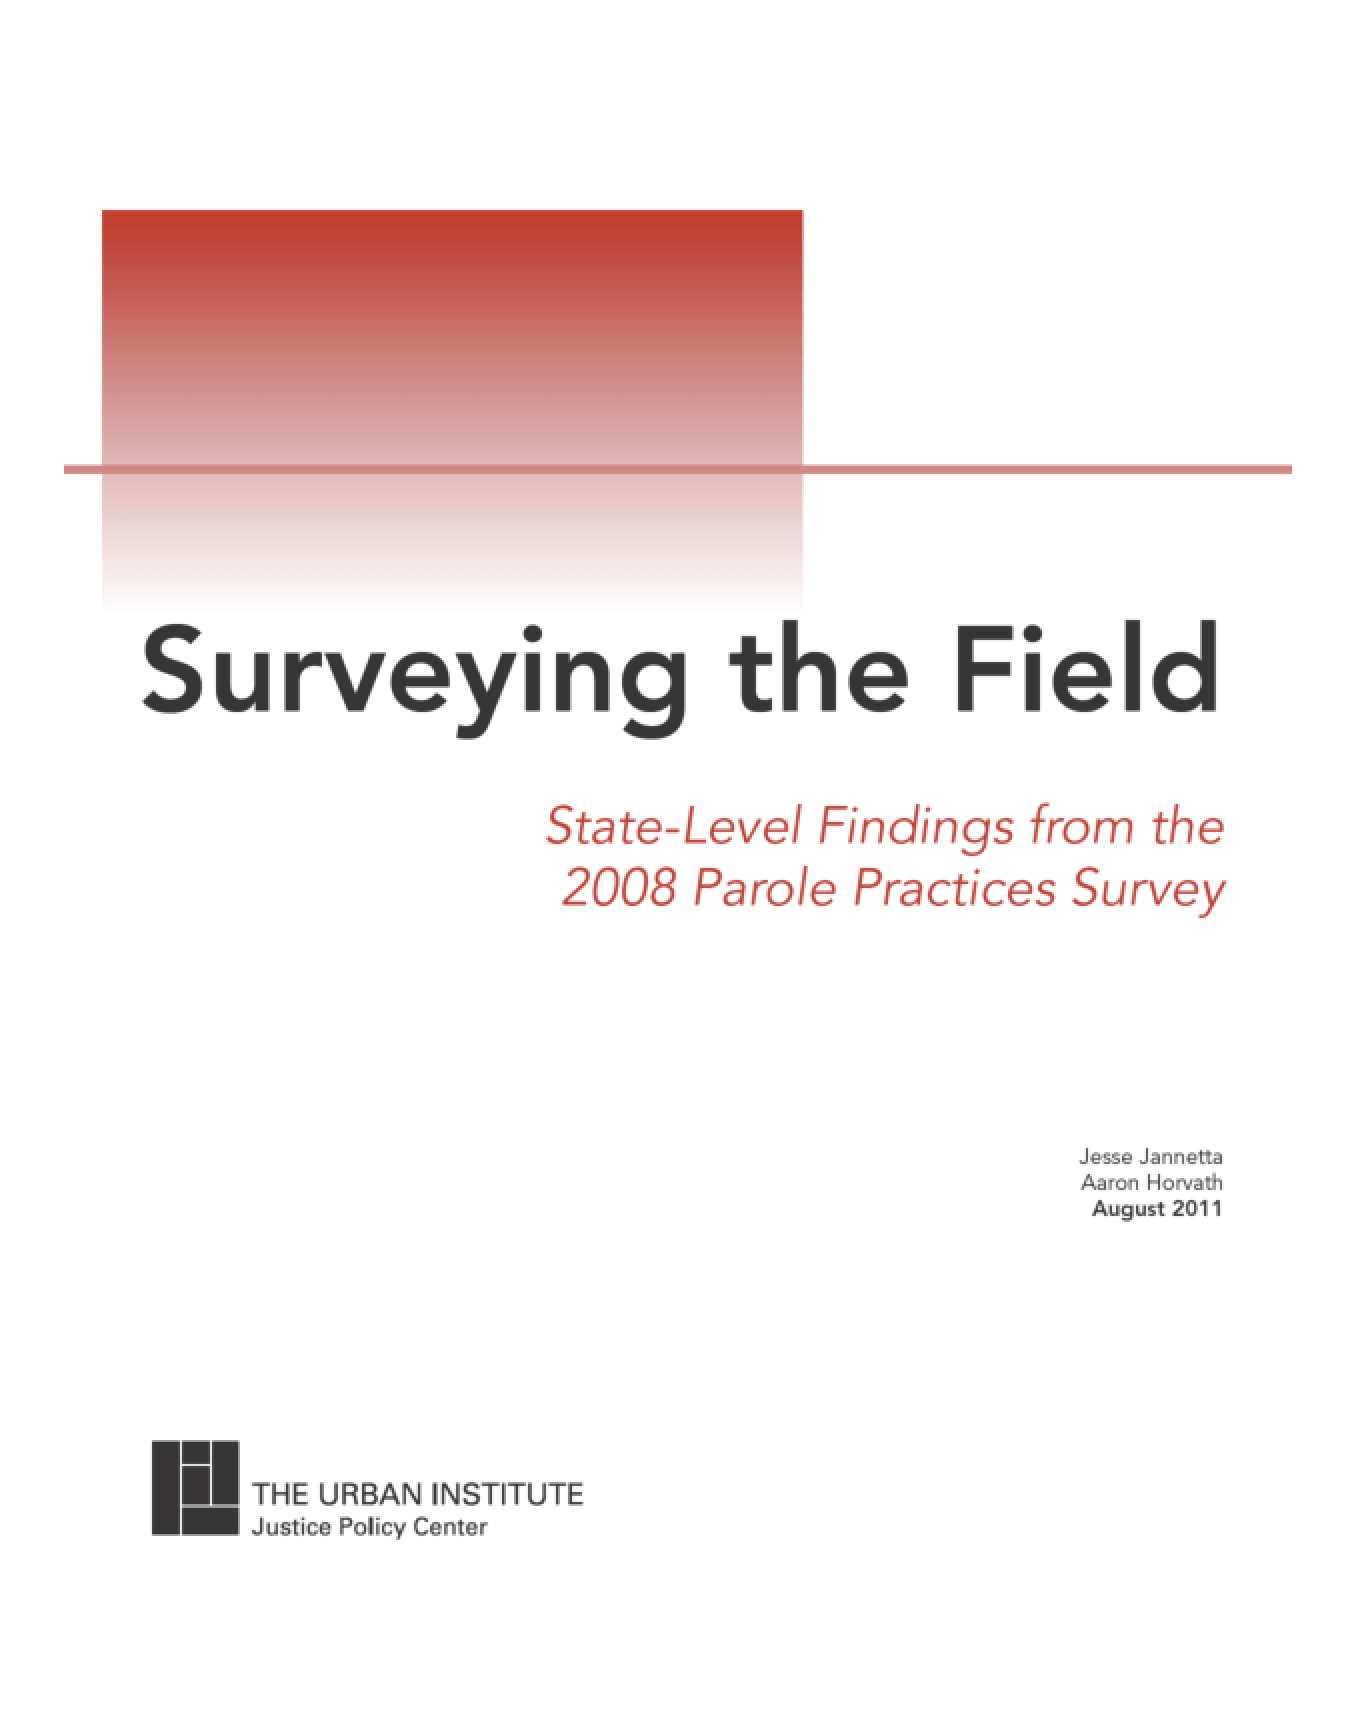 Surveying the Field: State-Level Findings From the 2008 Parole Practices Survey